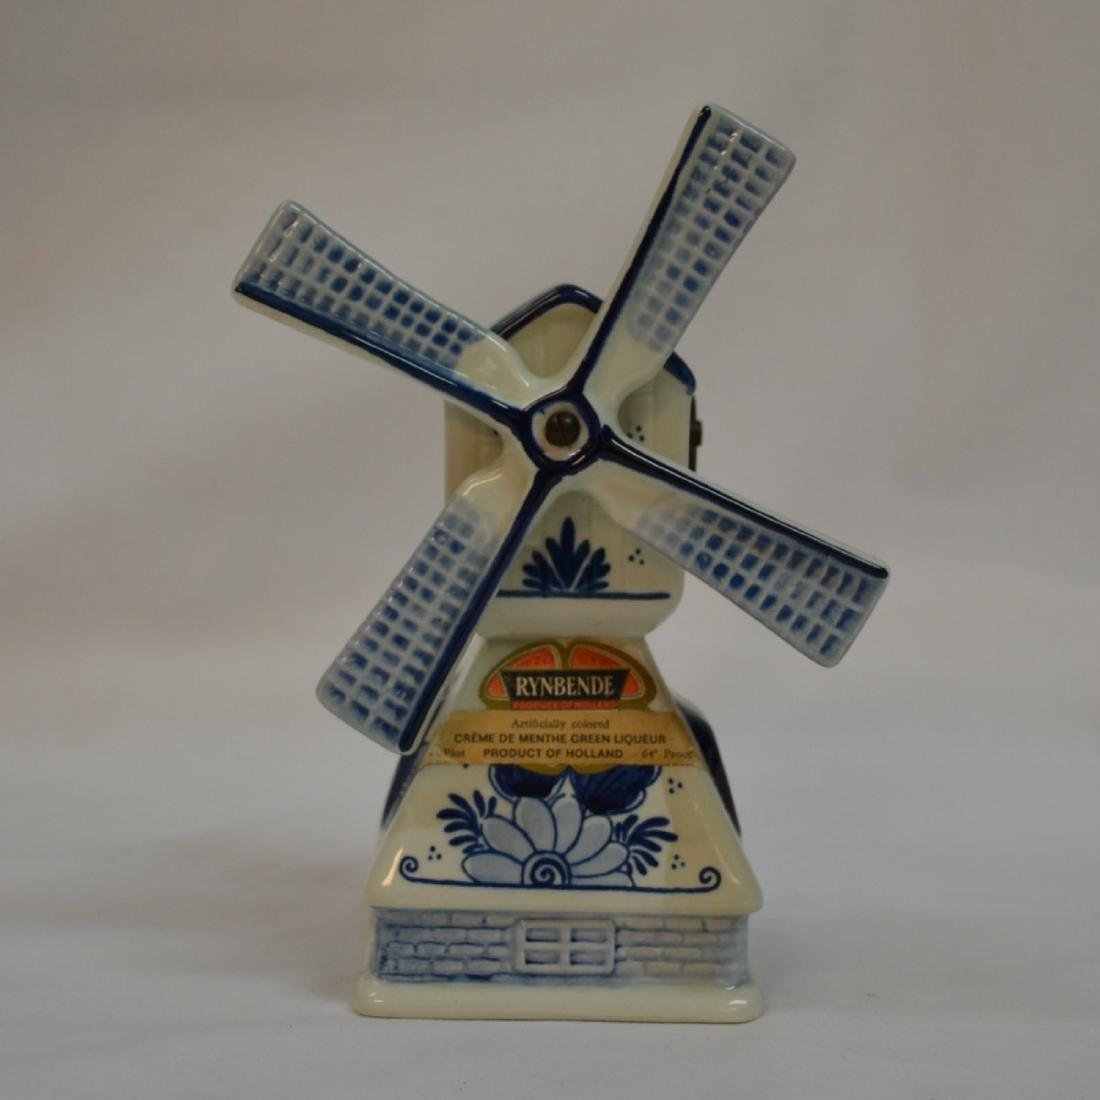 RYNBENDE WINDMILL ANND 1463 - DELFT BLUE - MADE IN